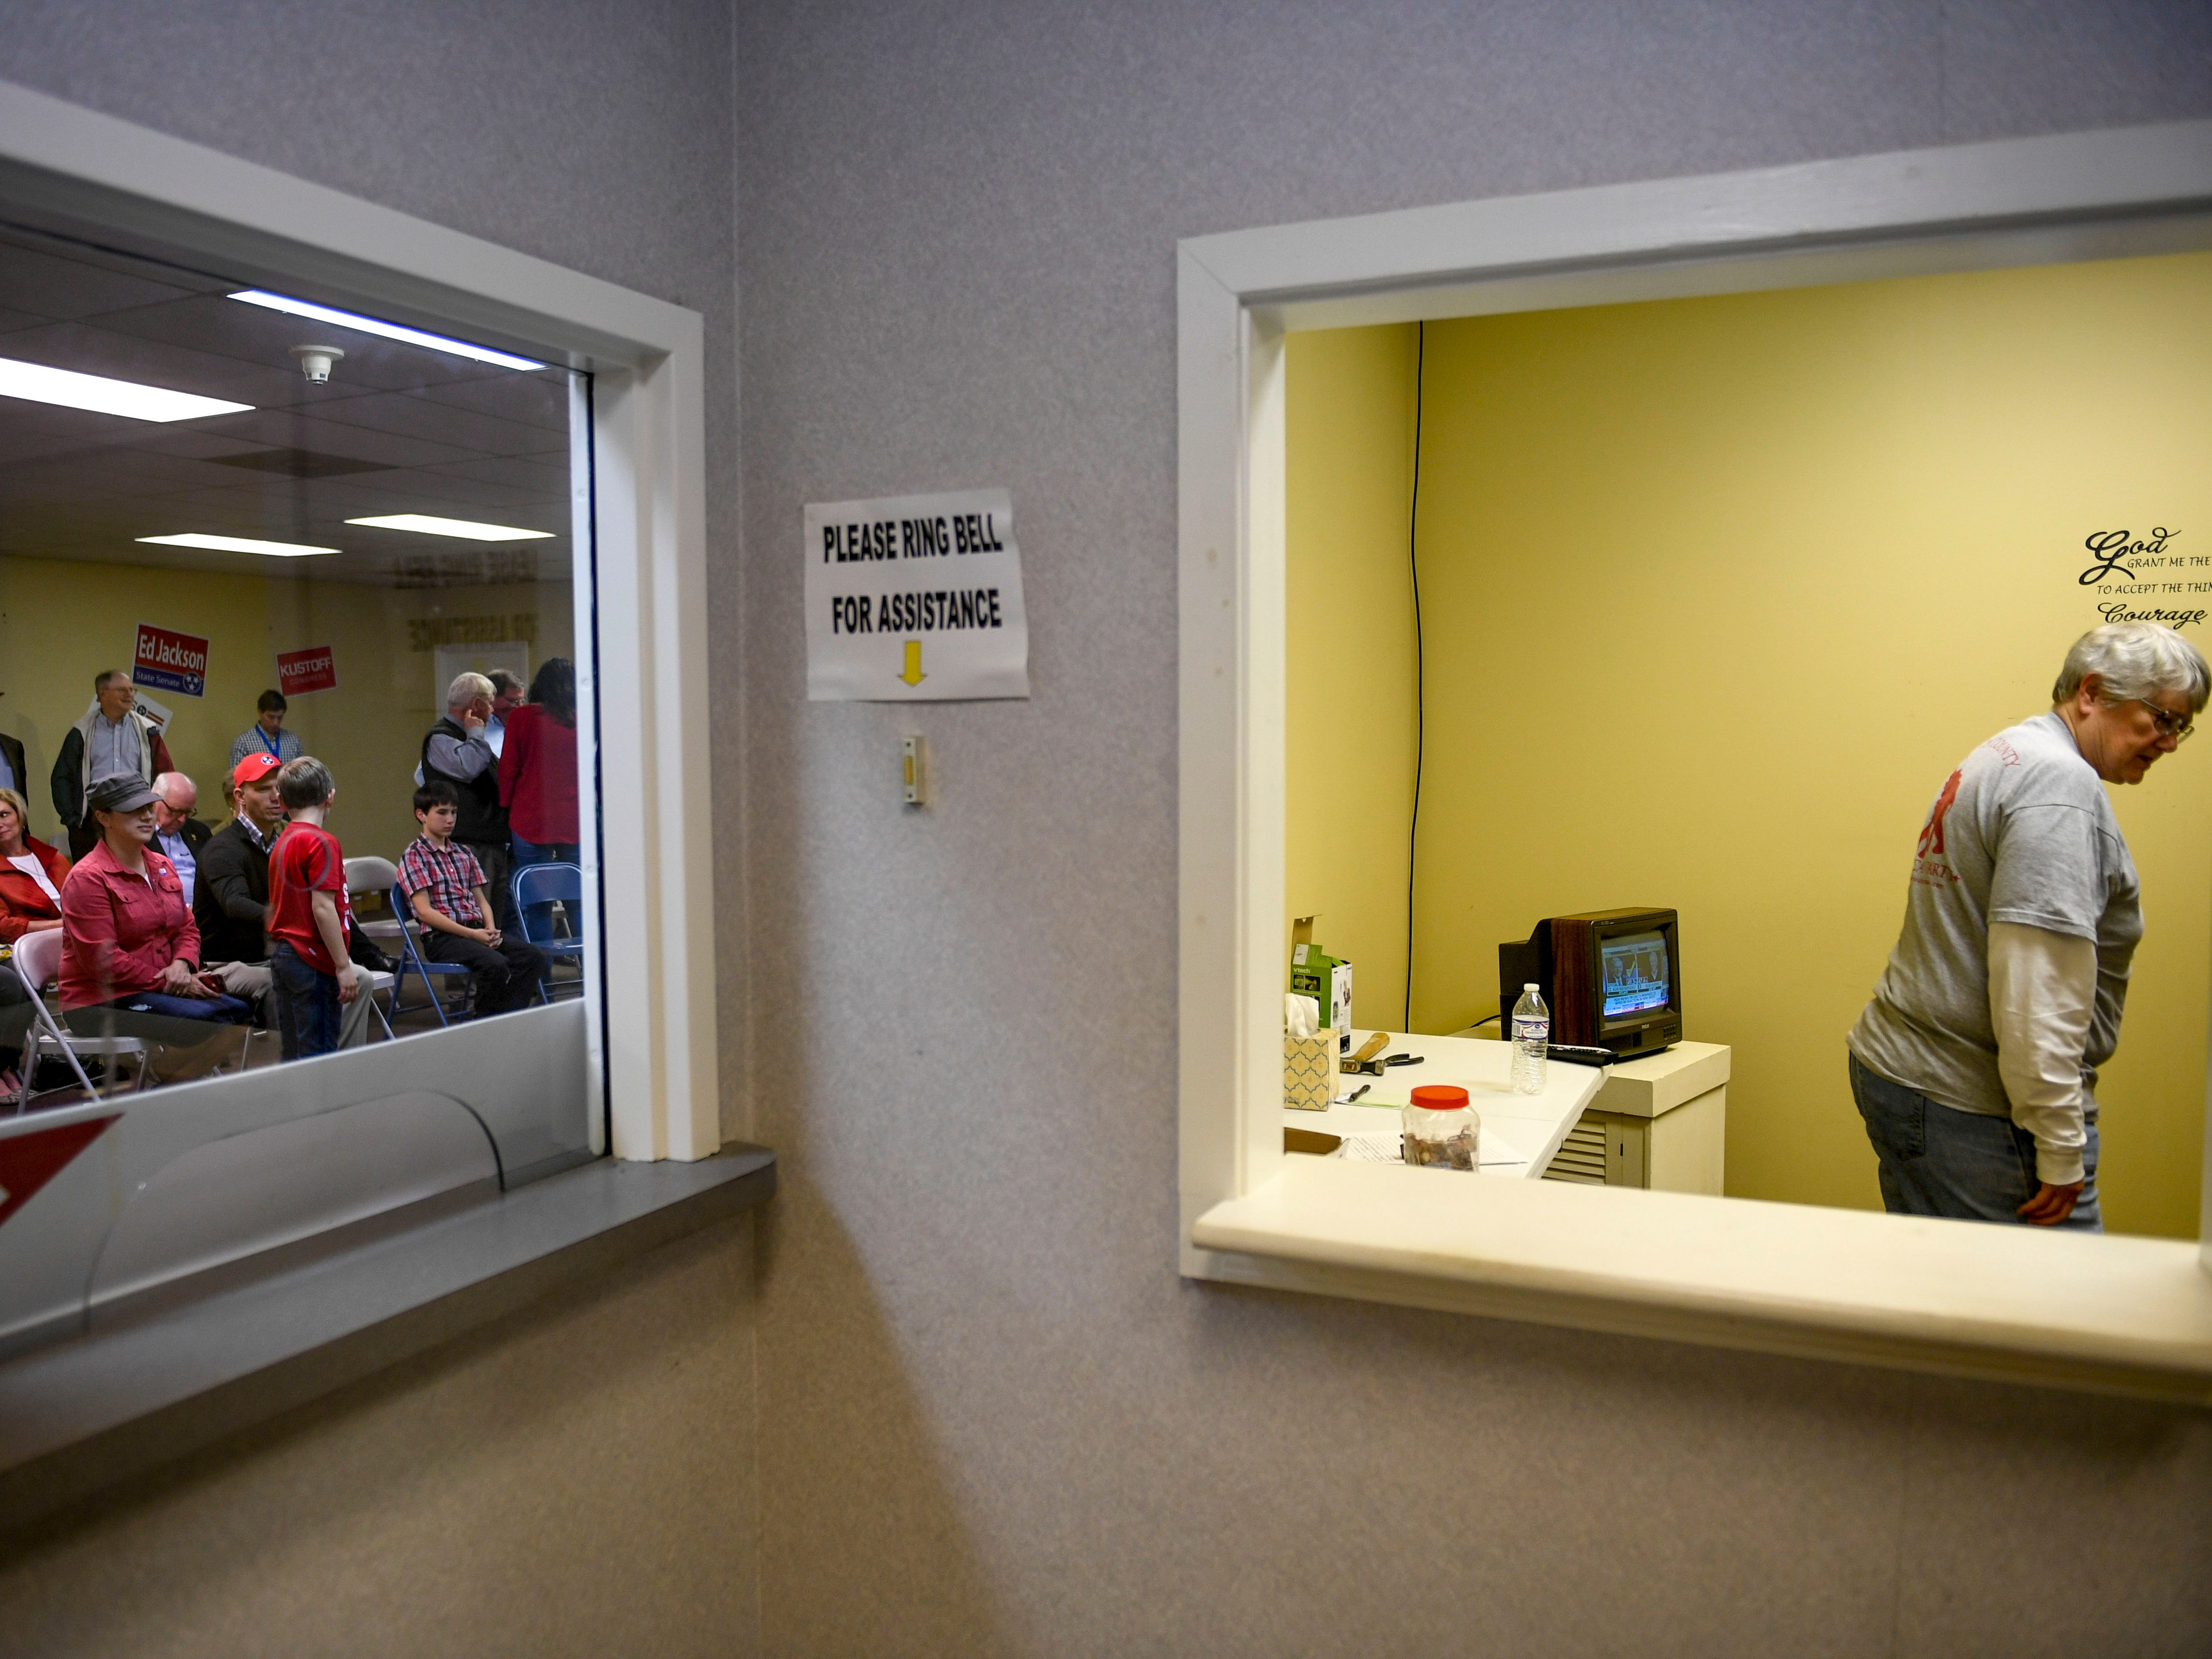 Donna Webb, who helps run the Madison County Republican Party, watches national election coverage in a small room to the side while the rest of participants watch in the main room during an election night watch party at Madison County Republican Headquarters in Jackson, Tenn., on Tuesday, Nov. 6, 2018.